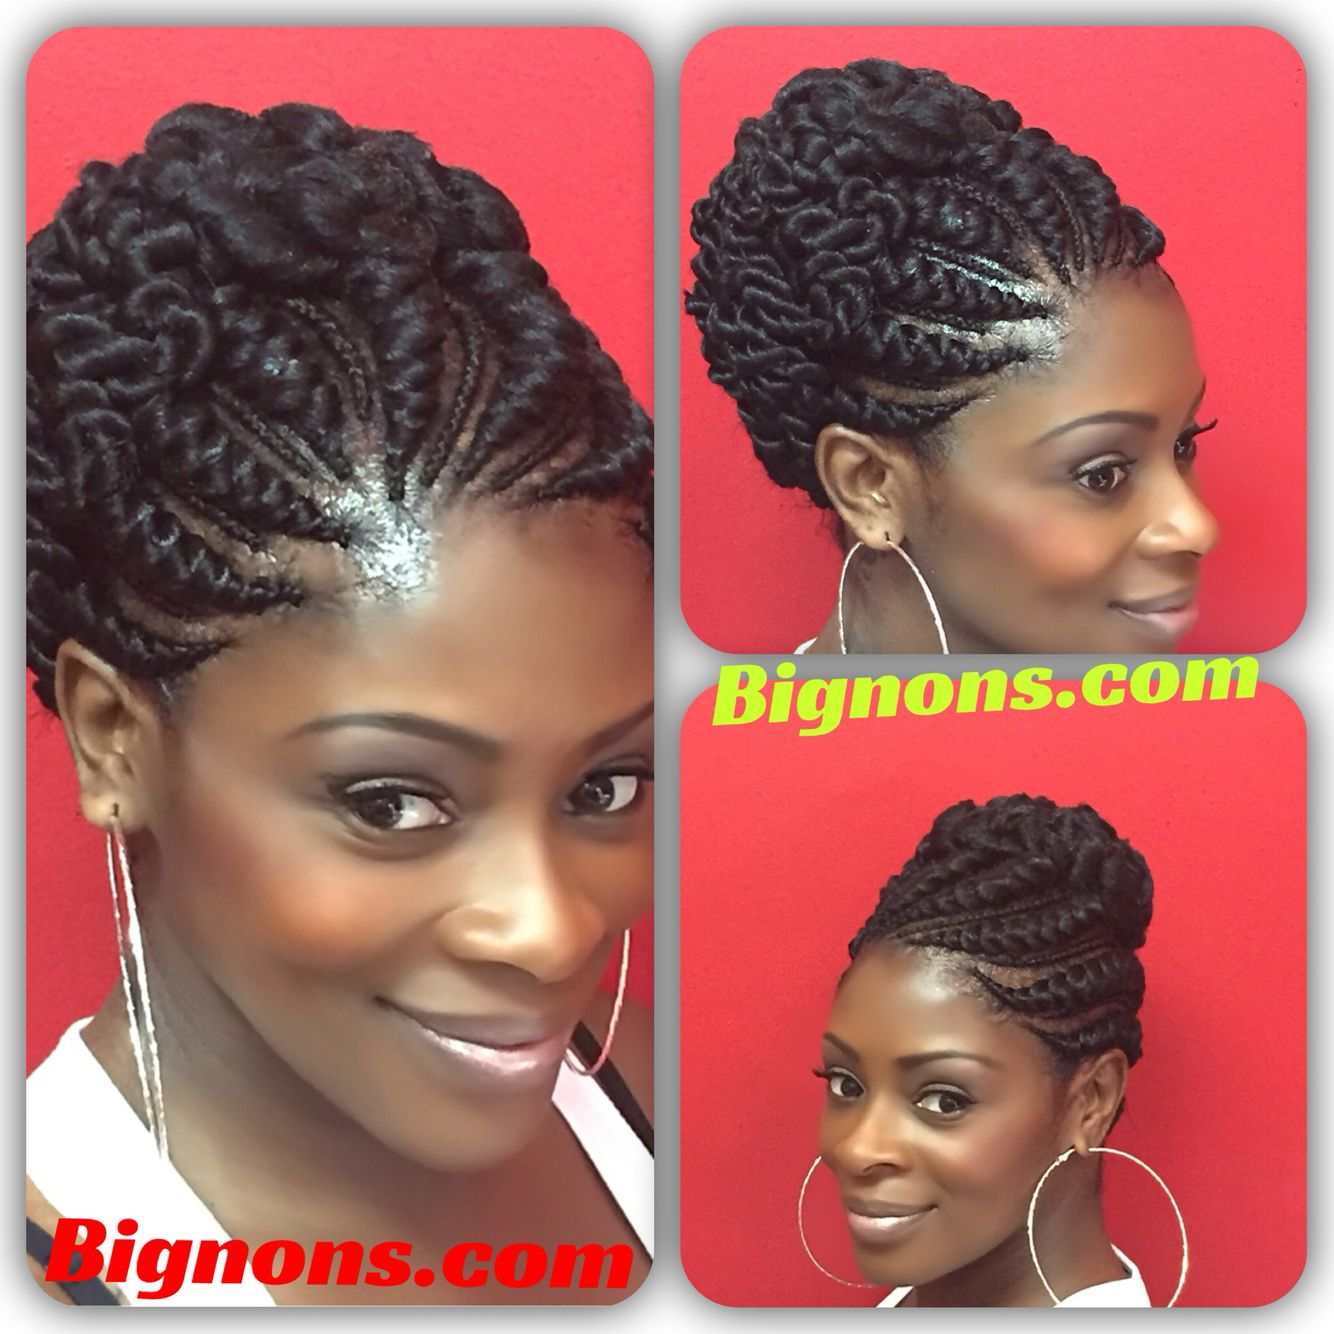 Bignonus african hair braiding torssadee cornrow wedding hairstyle